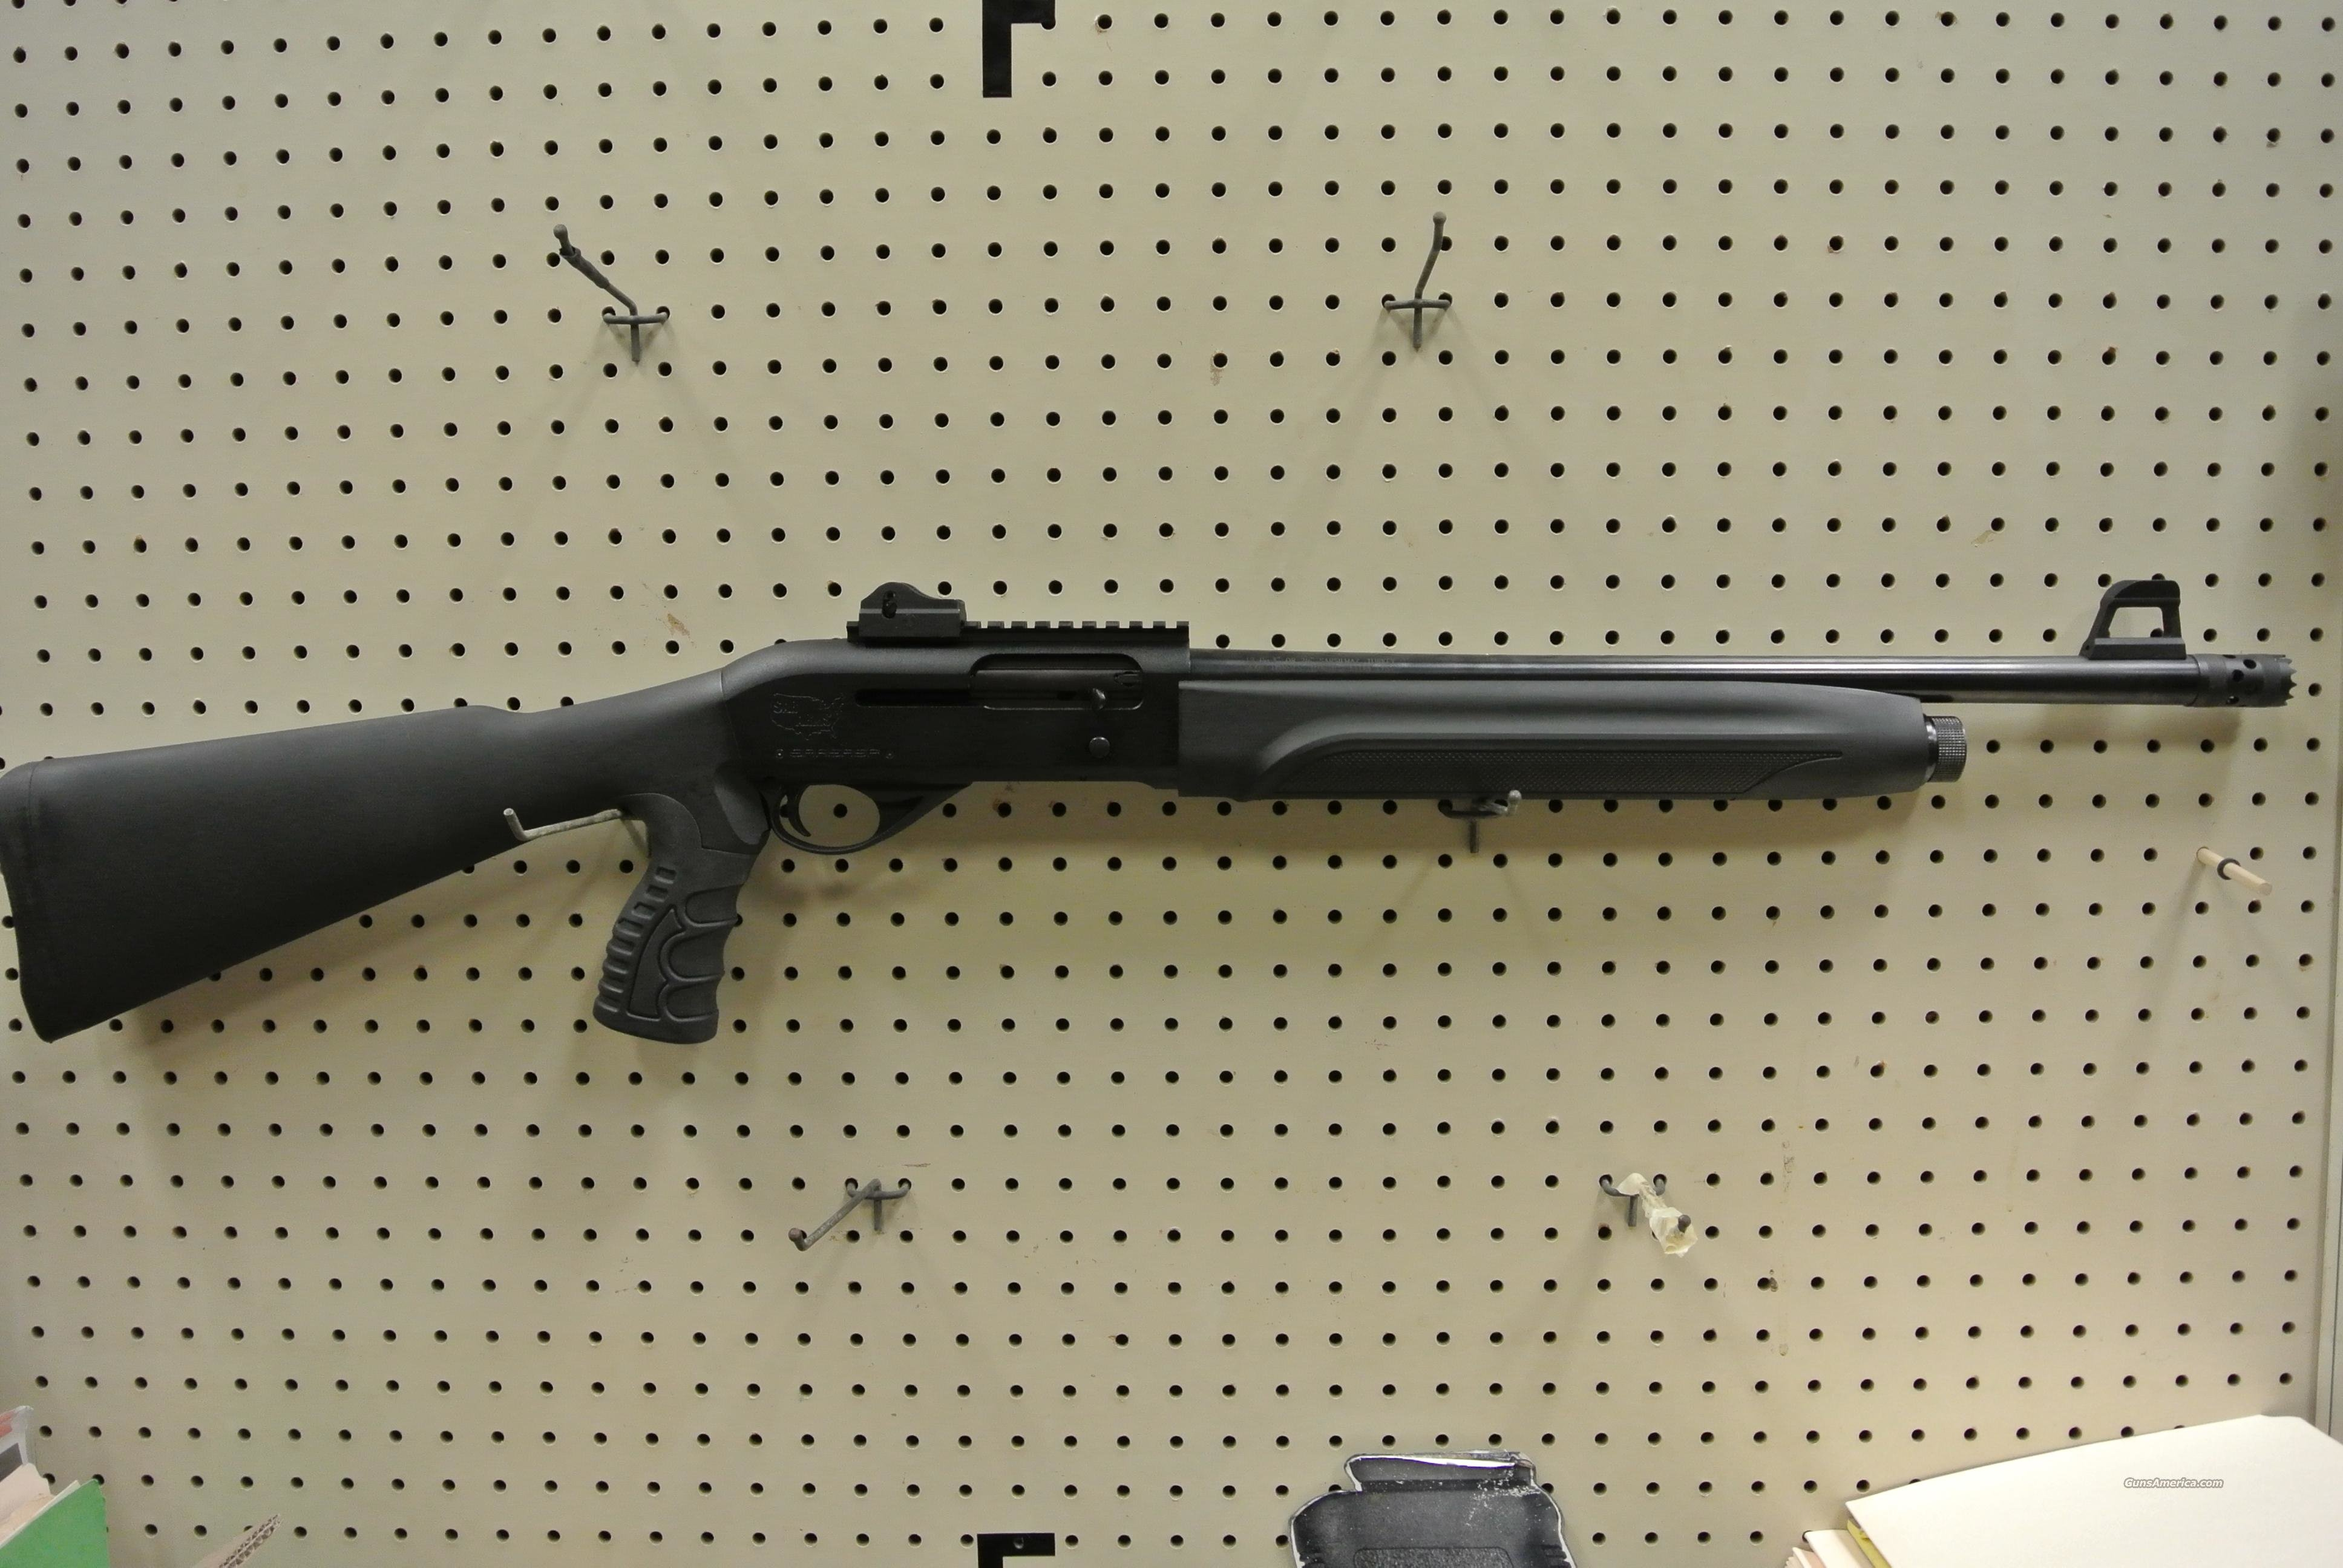 EAA SARSA Semi-Auto 12 gauge 3inch Home Defense Shotgun  Guns > Shotguns > EAA Shotguns